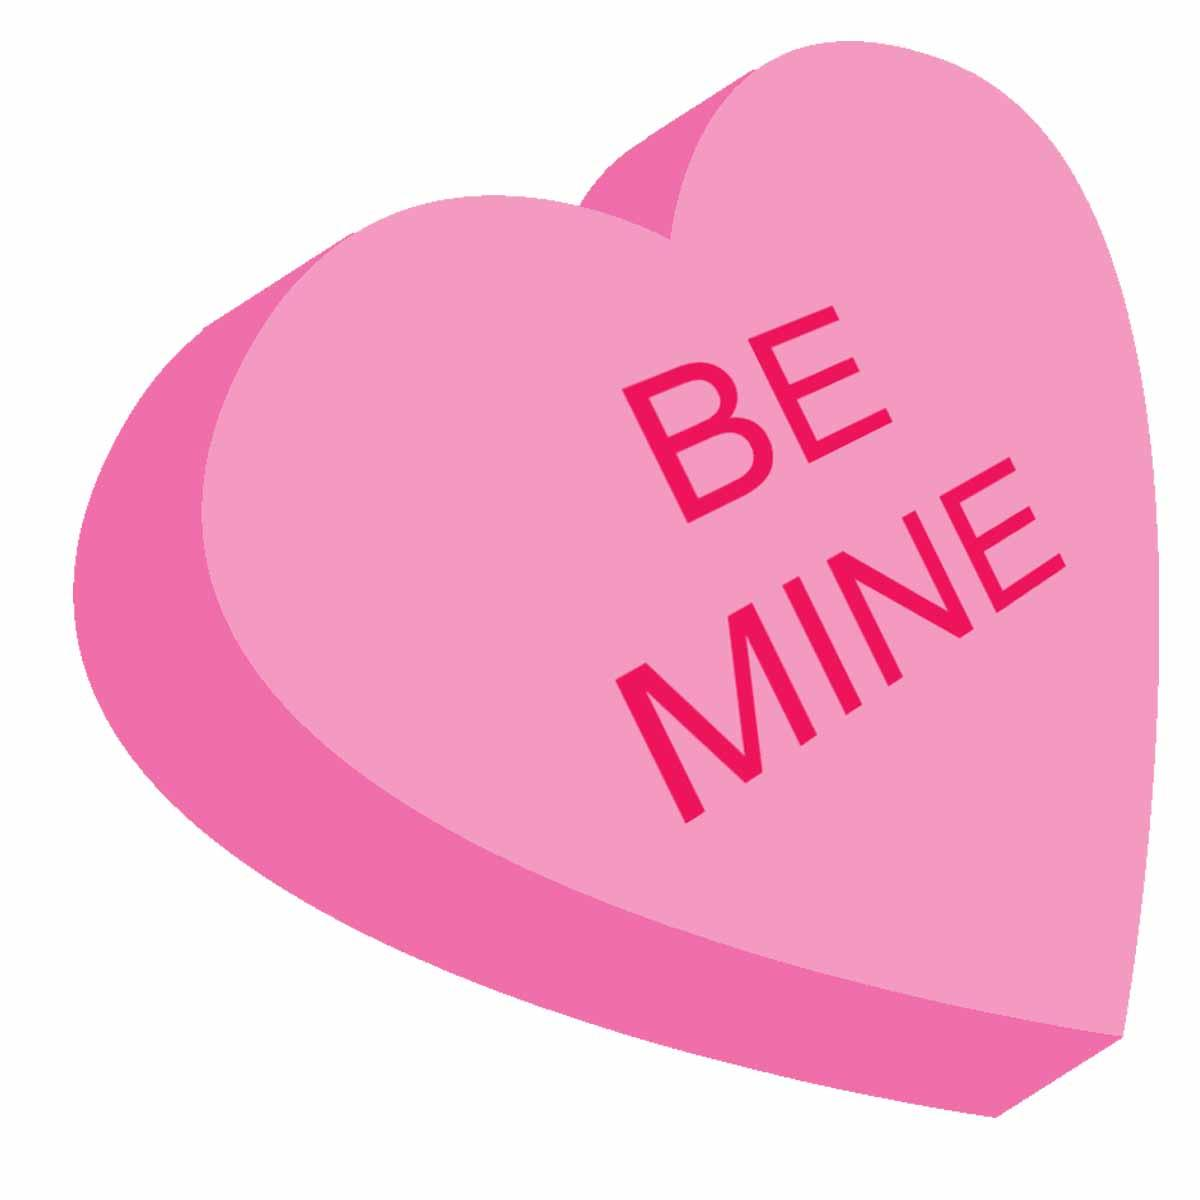 Romantic Valentine Candy Hearts Clipart Funny Pictures Shake The Tfjbo Clipart